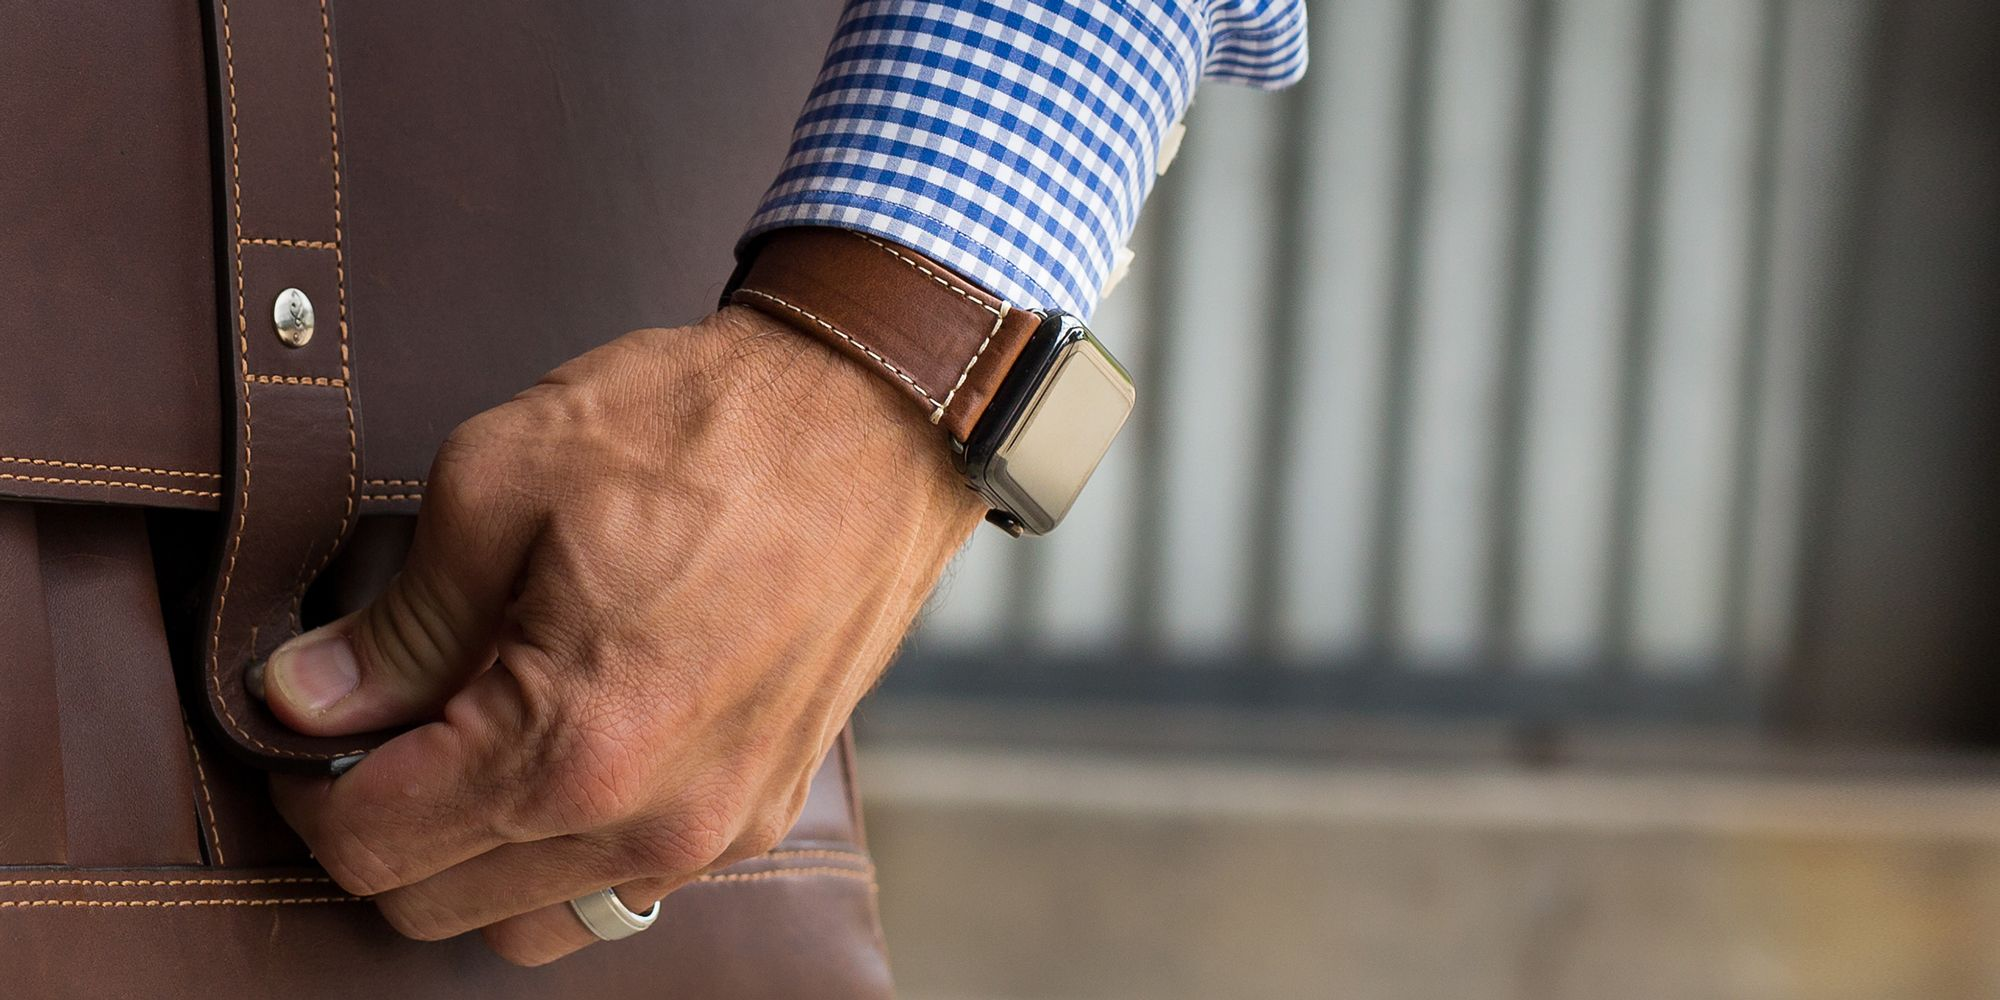 THESE APPLE WATCH BANDS BRING A CUSTOMIZED LOOK TO YOUR FAVORITE GADGET